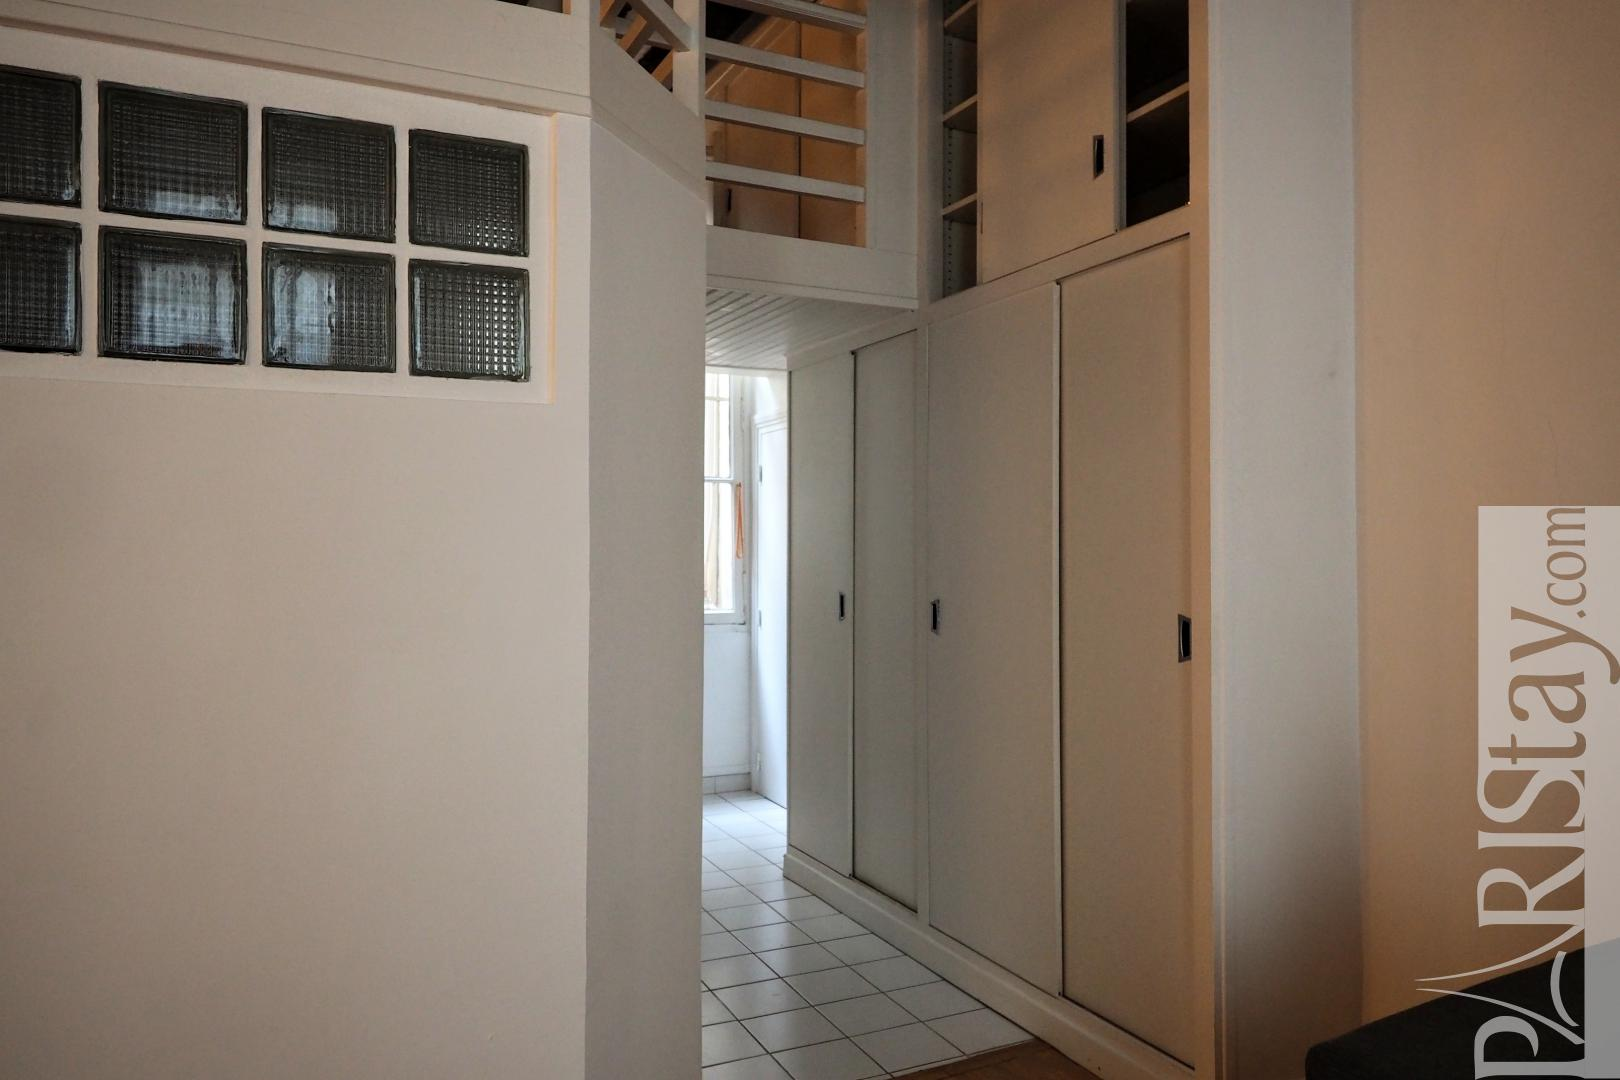 Location appartement meuble paris t2 meuble saint michel for Location appartement meuble paris